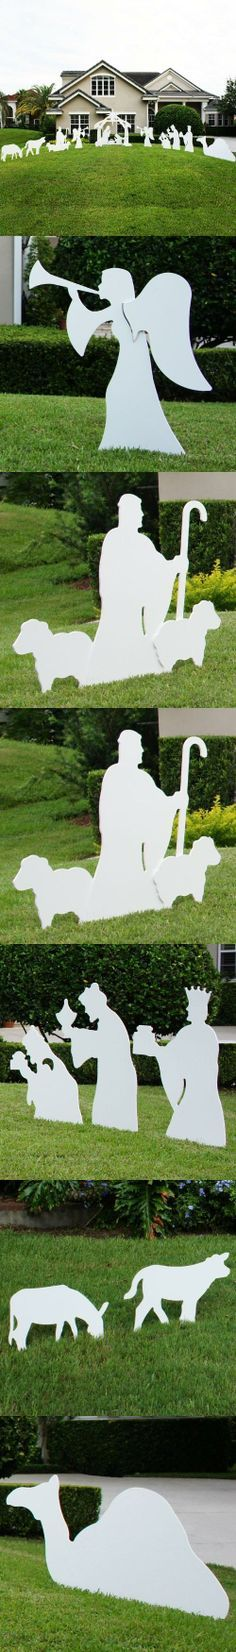 Teak Isle Christmas Outdoor Complete Nativity Scene, Large, Christmas Outdoor Complete Nativity Scene - Large. Display the True Reason for the Season. Beautiful silhouette style nativity that complements any yard without looking overly commercial. Nativity set..., #Outdoor Living, #Garden Sculptures & Statues